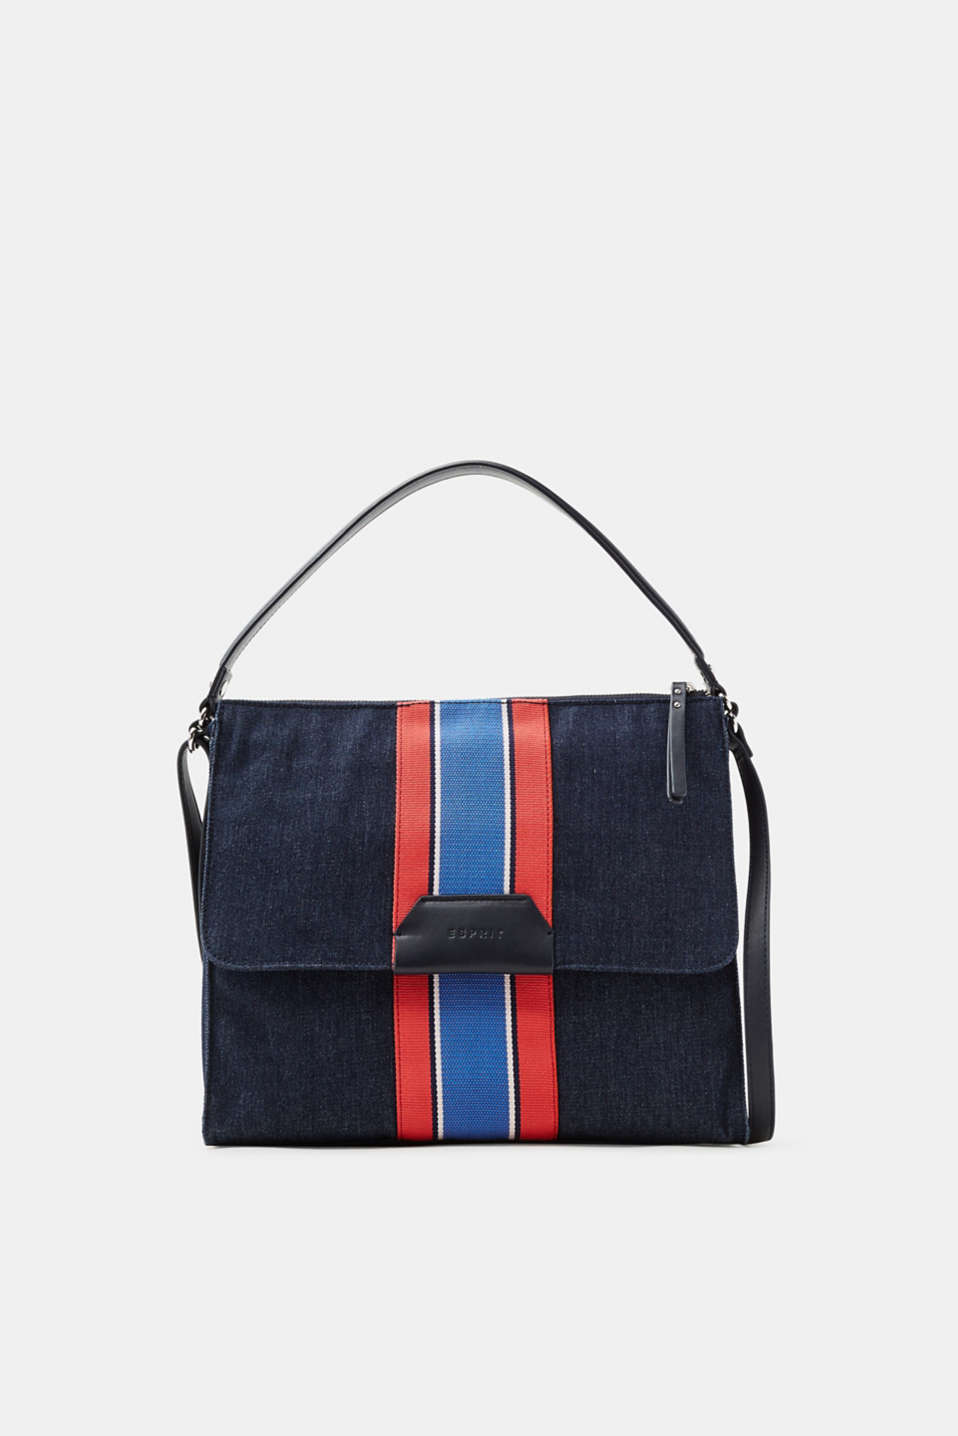 We love denim! This hobo bag stands out thanks to its melange denim finish and distinctive woven stripes.